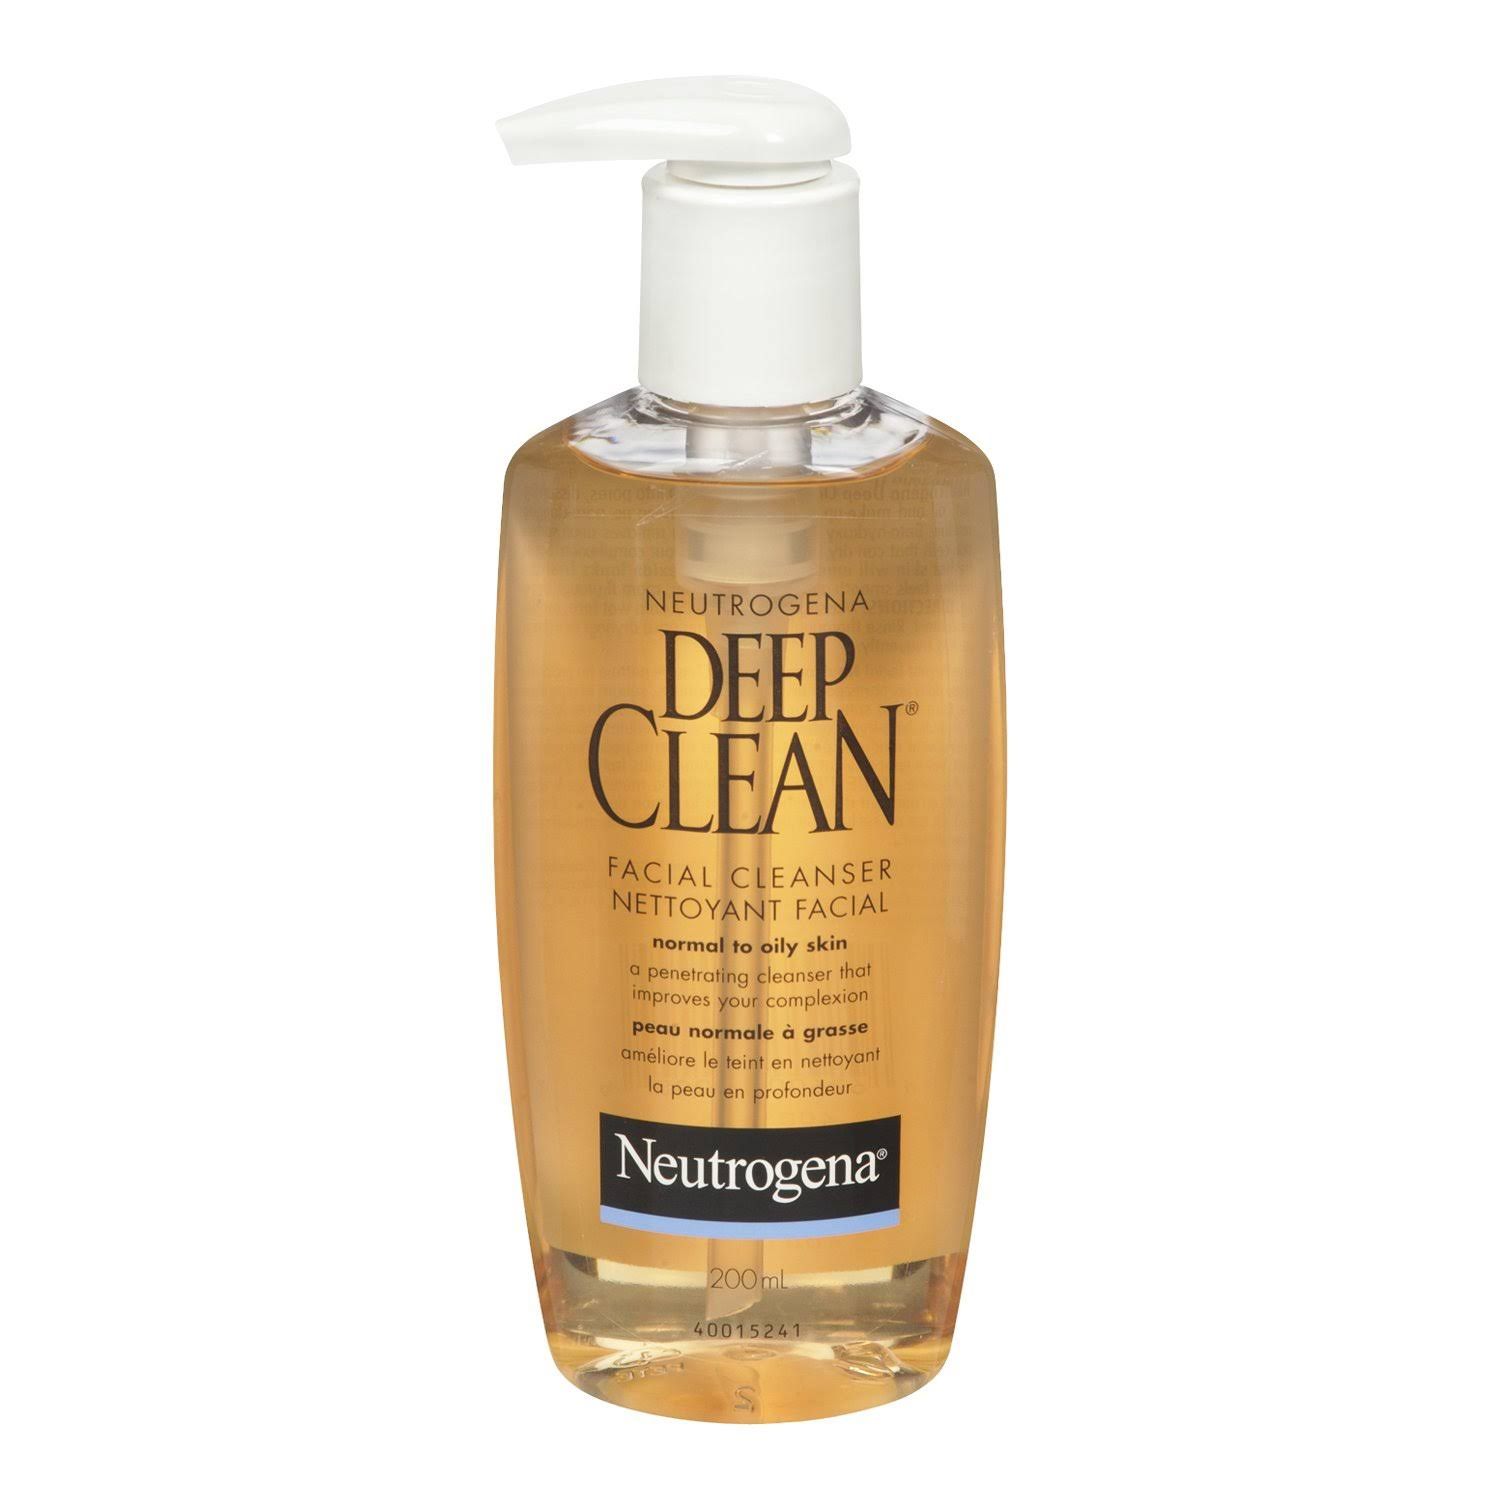 Neutrogena Deep Clean Face Wash Oil Free Facial Cleanser - 200ml